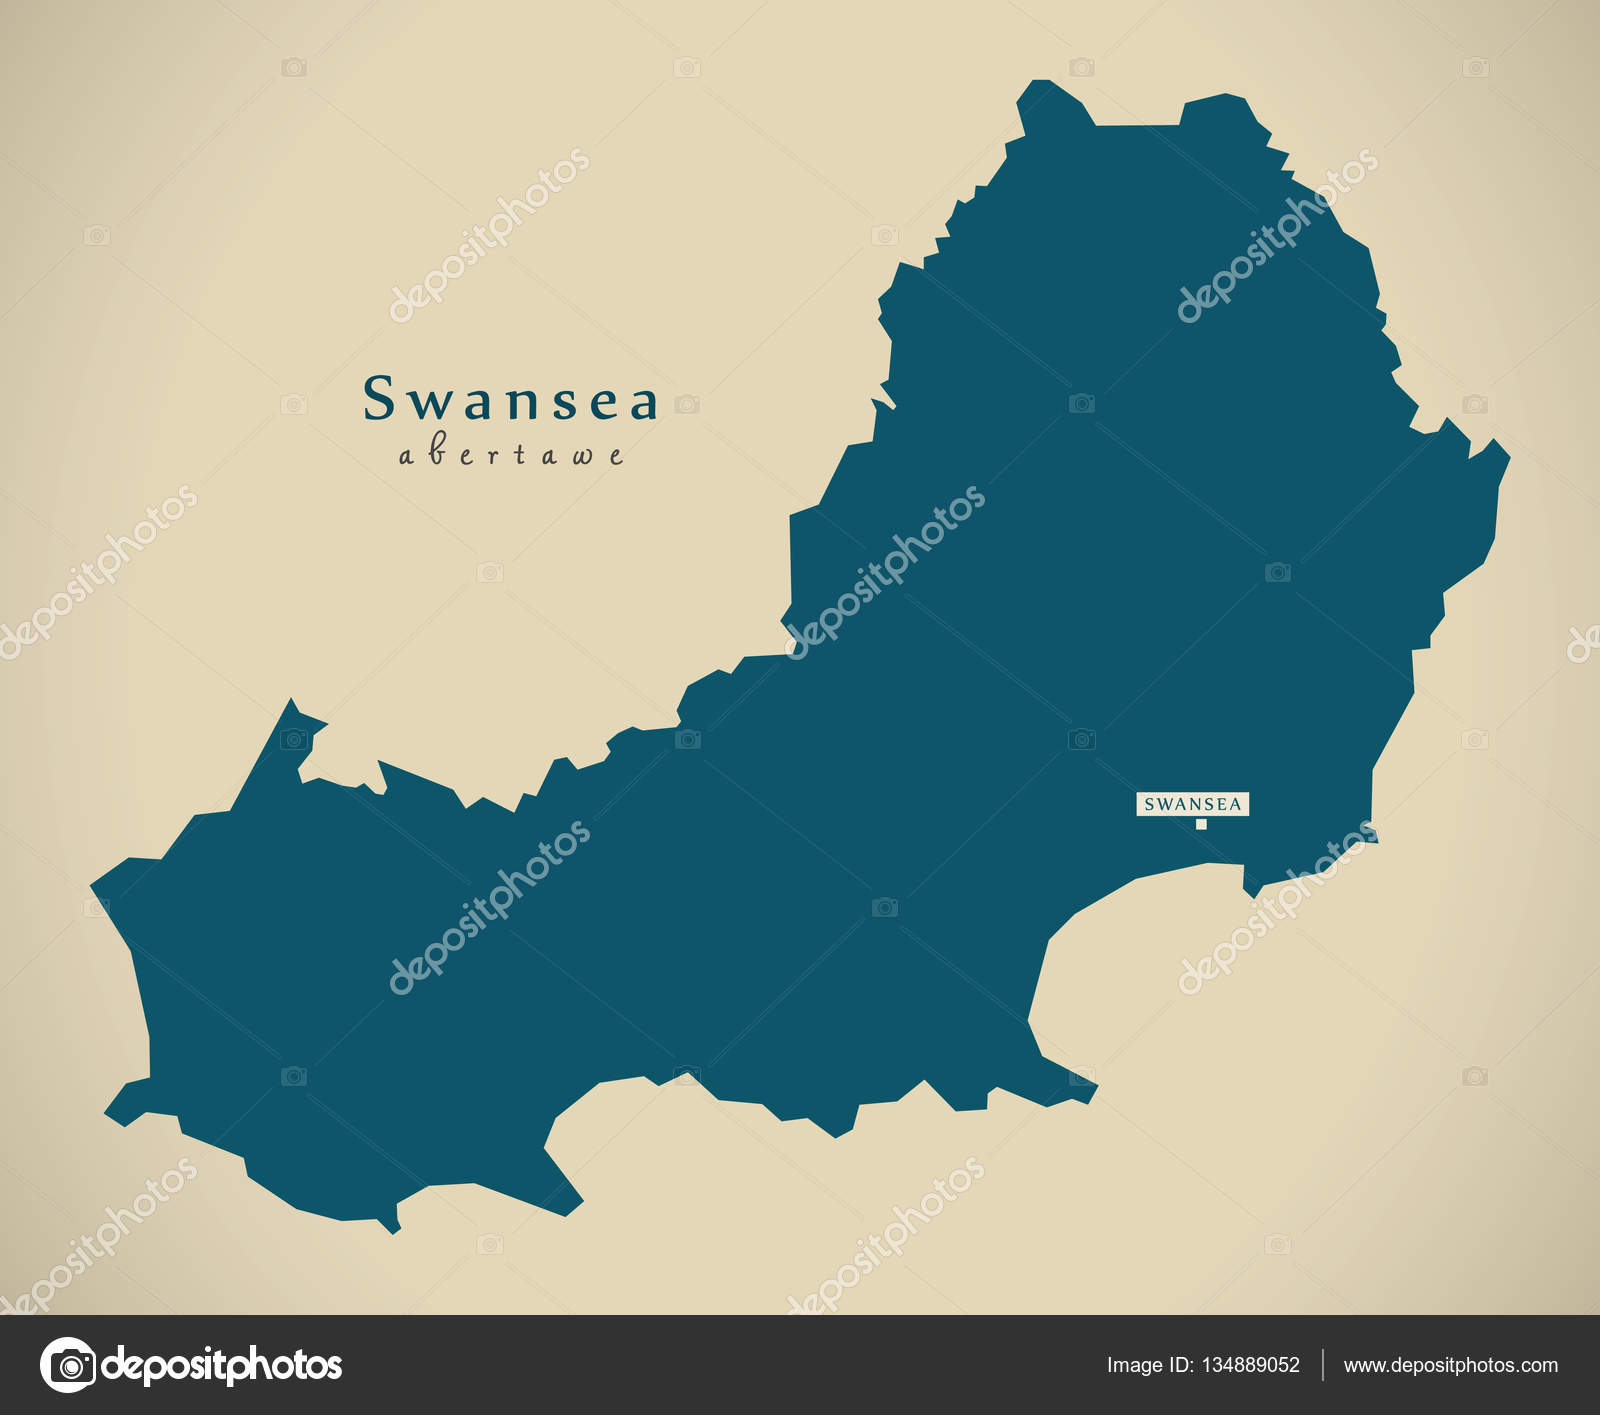 Modern Map Swansea Wales UK Stock Photo ingomenhard 134889052